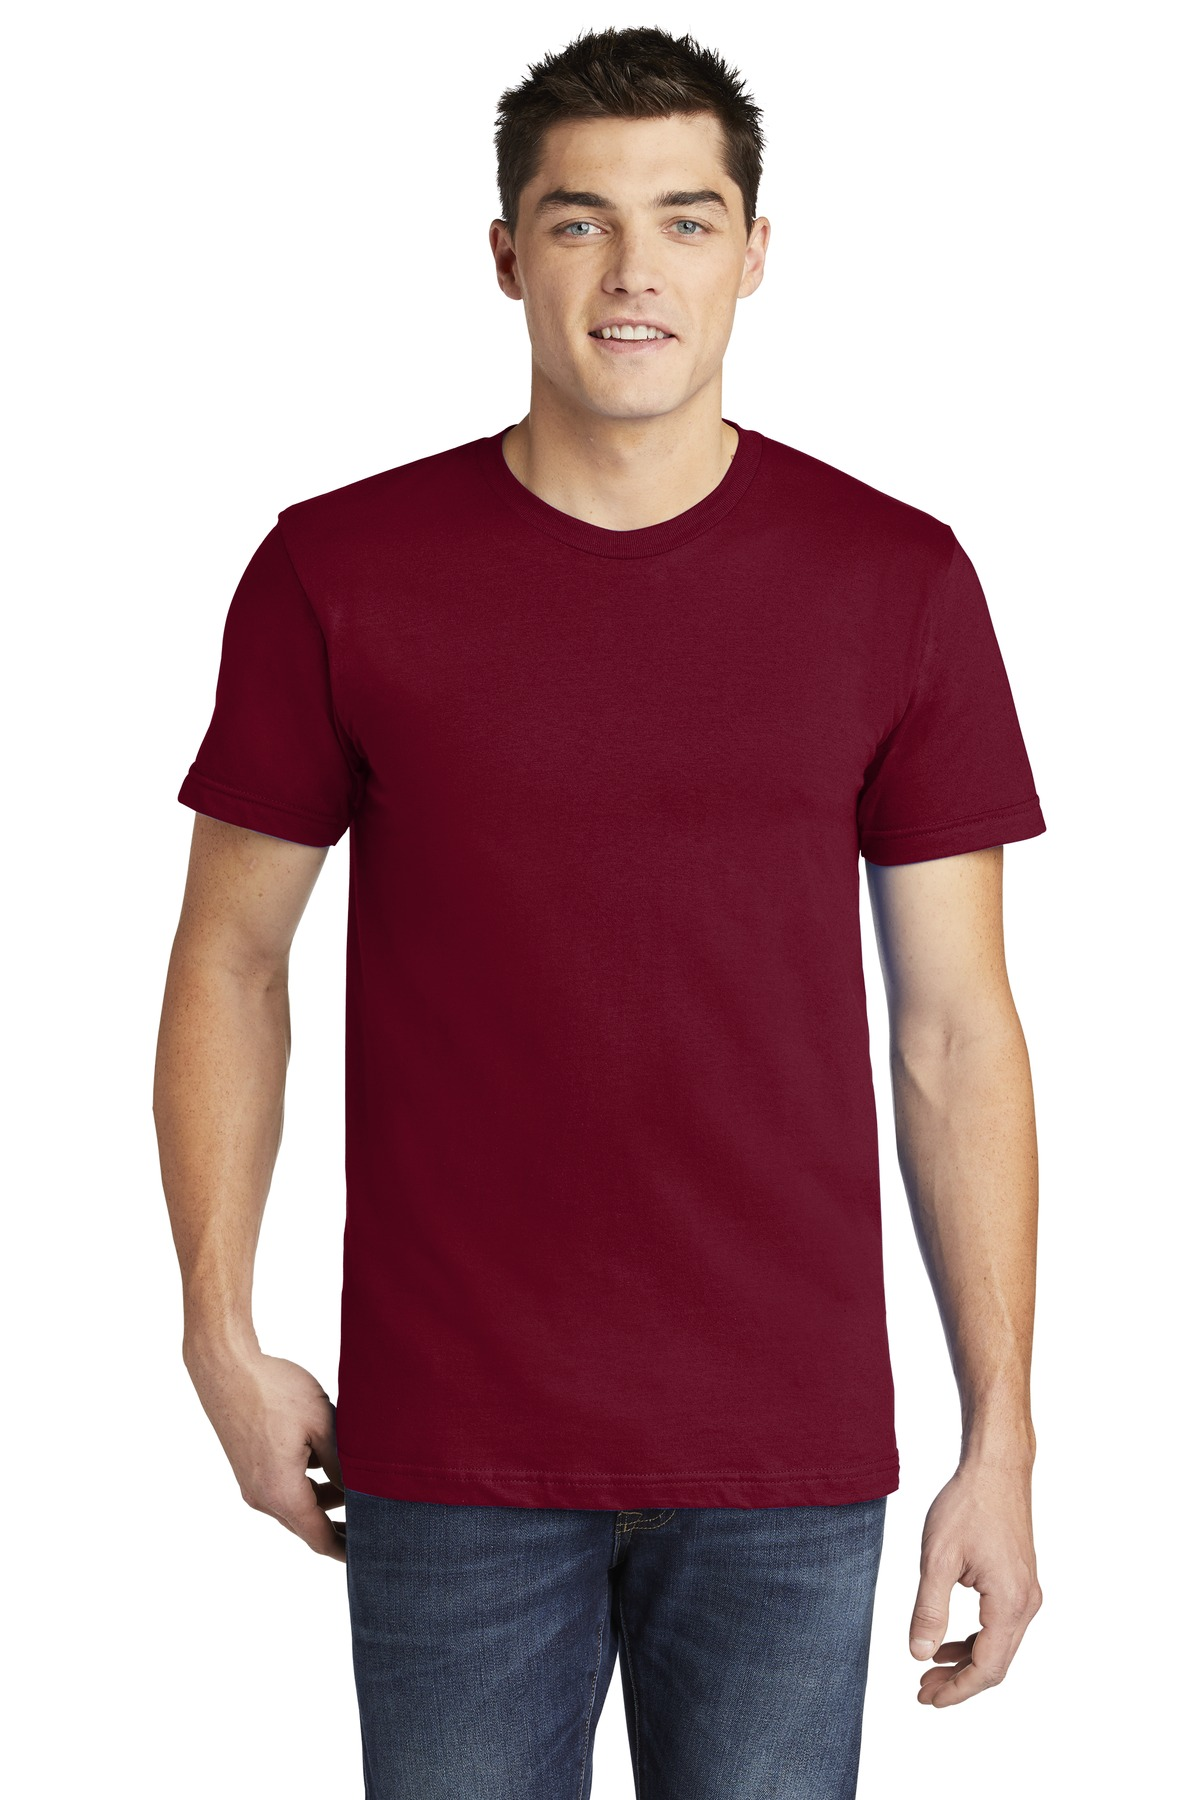 American Apparel  ®  USA Collection Fine Jersey T-Shirt. 2001A - Cranberry